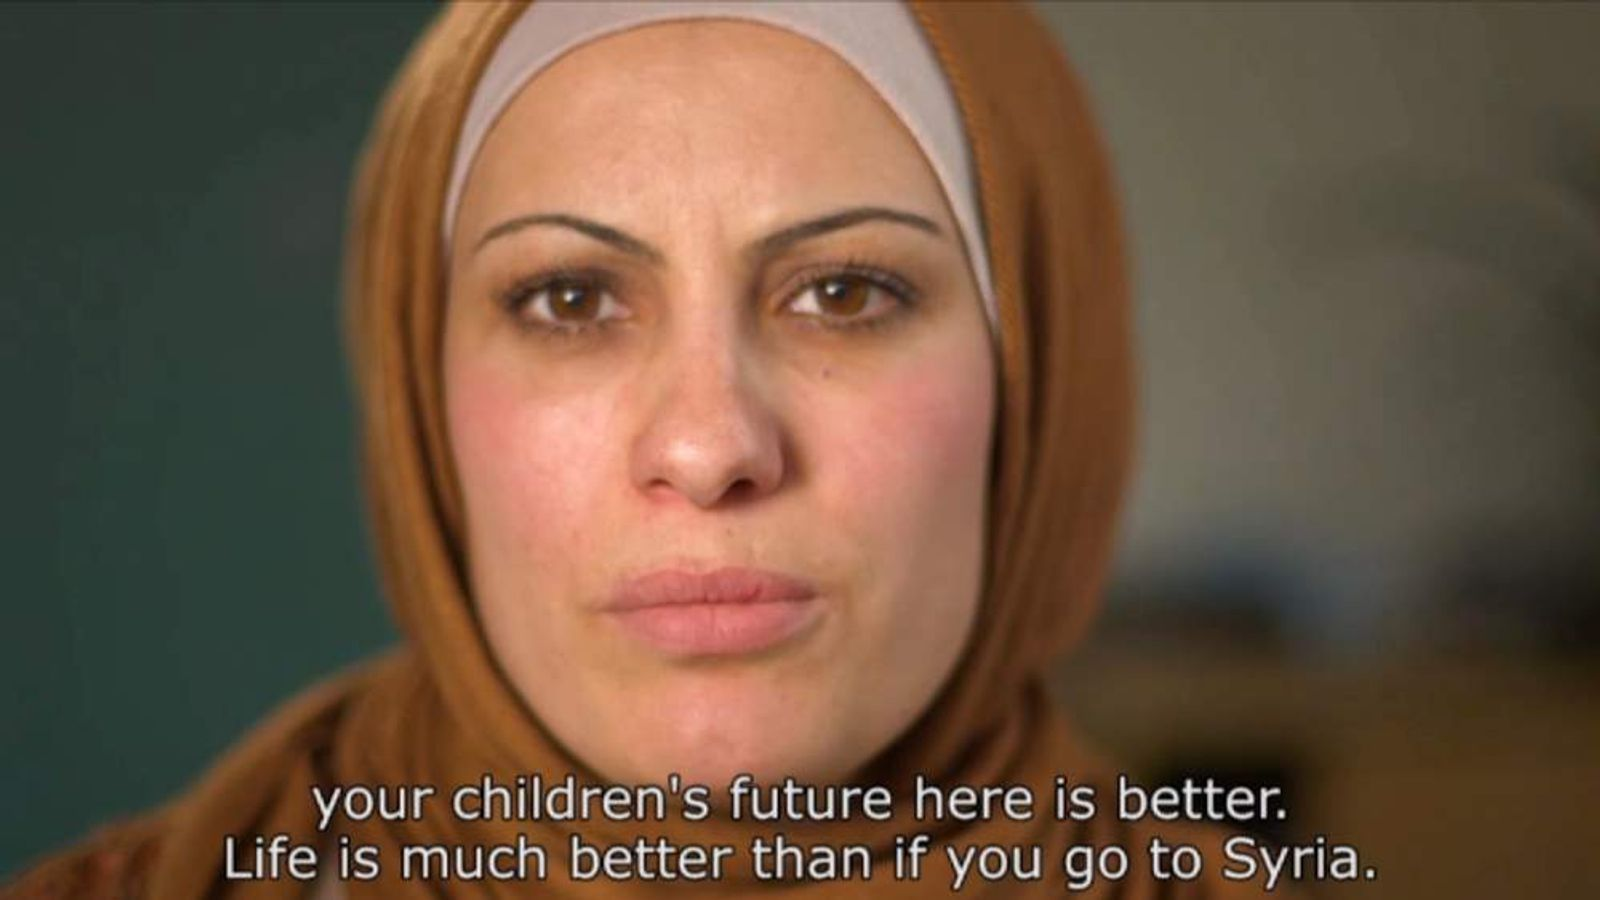 Syrian women tell their fellow countrymen that life in the UK is better than life in Syria